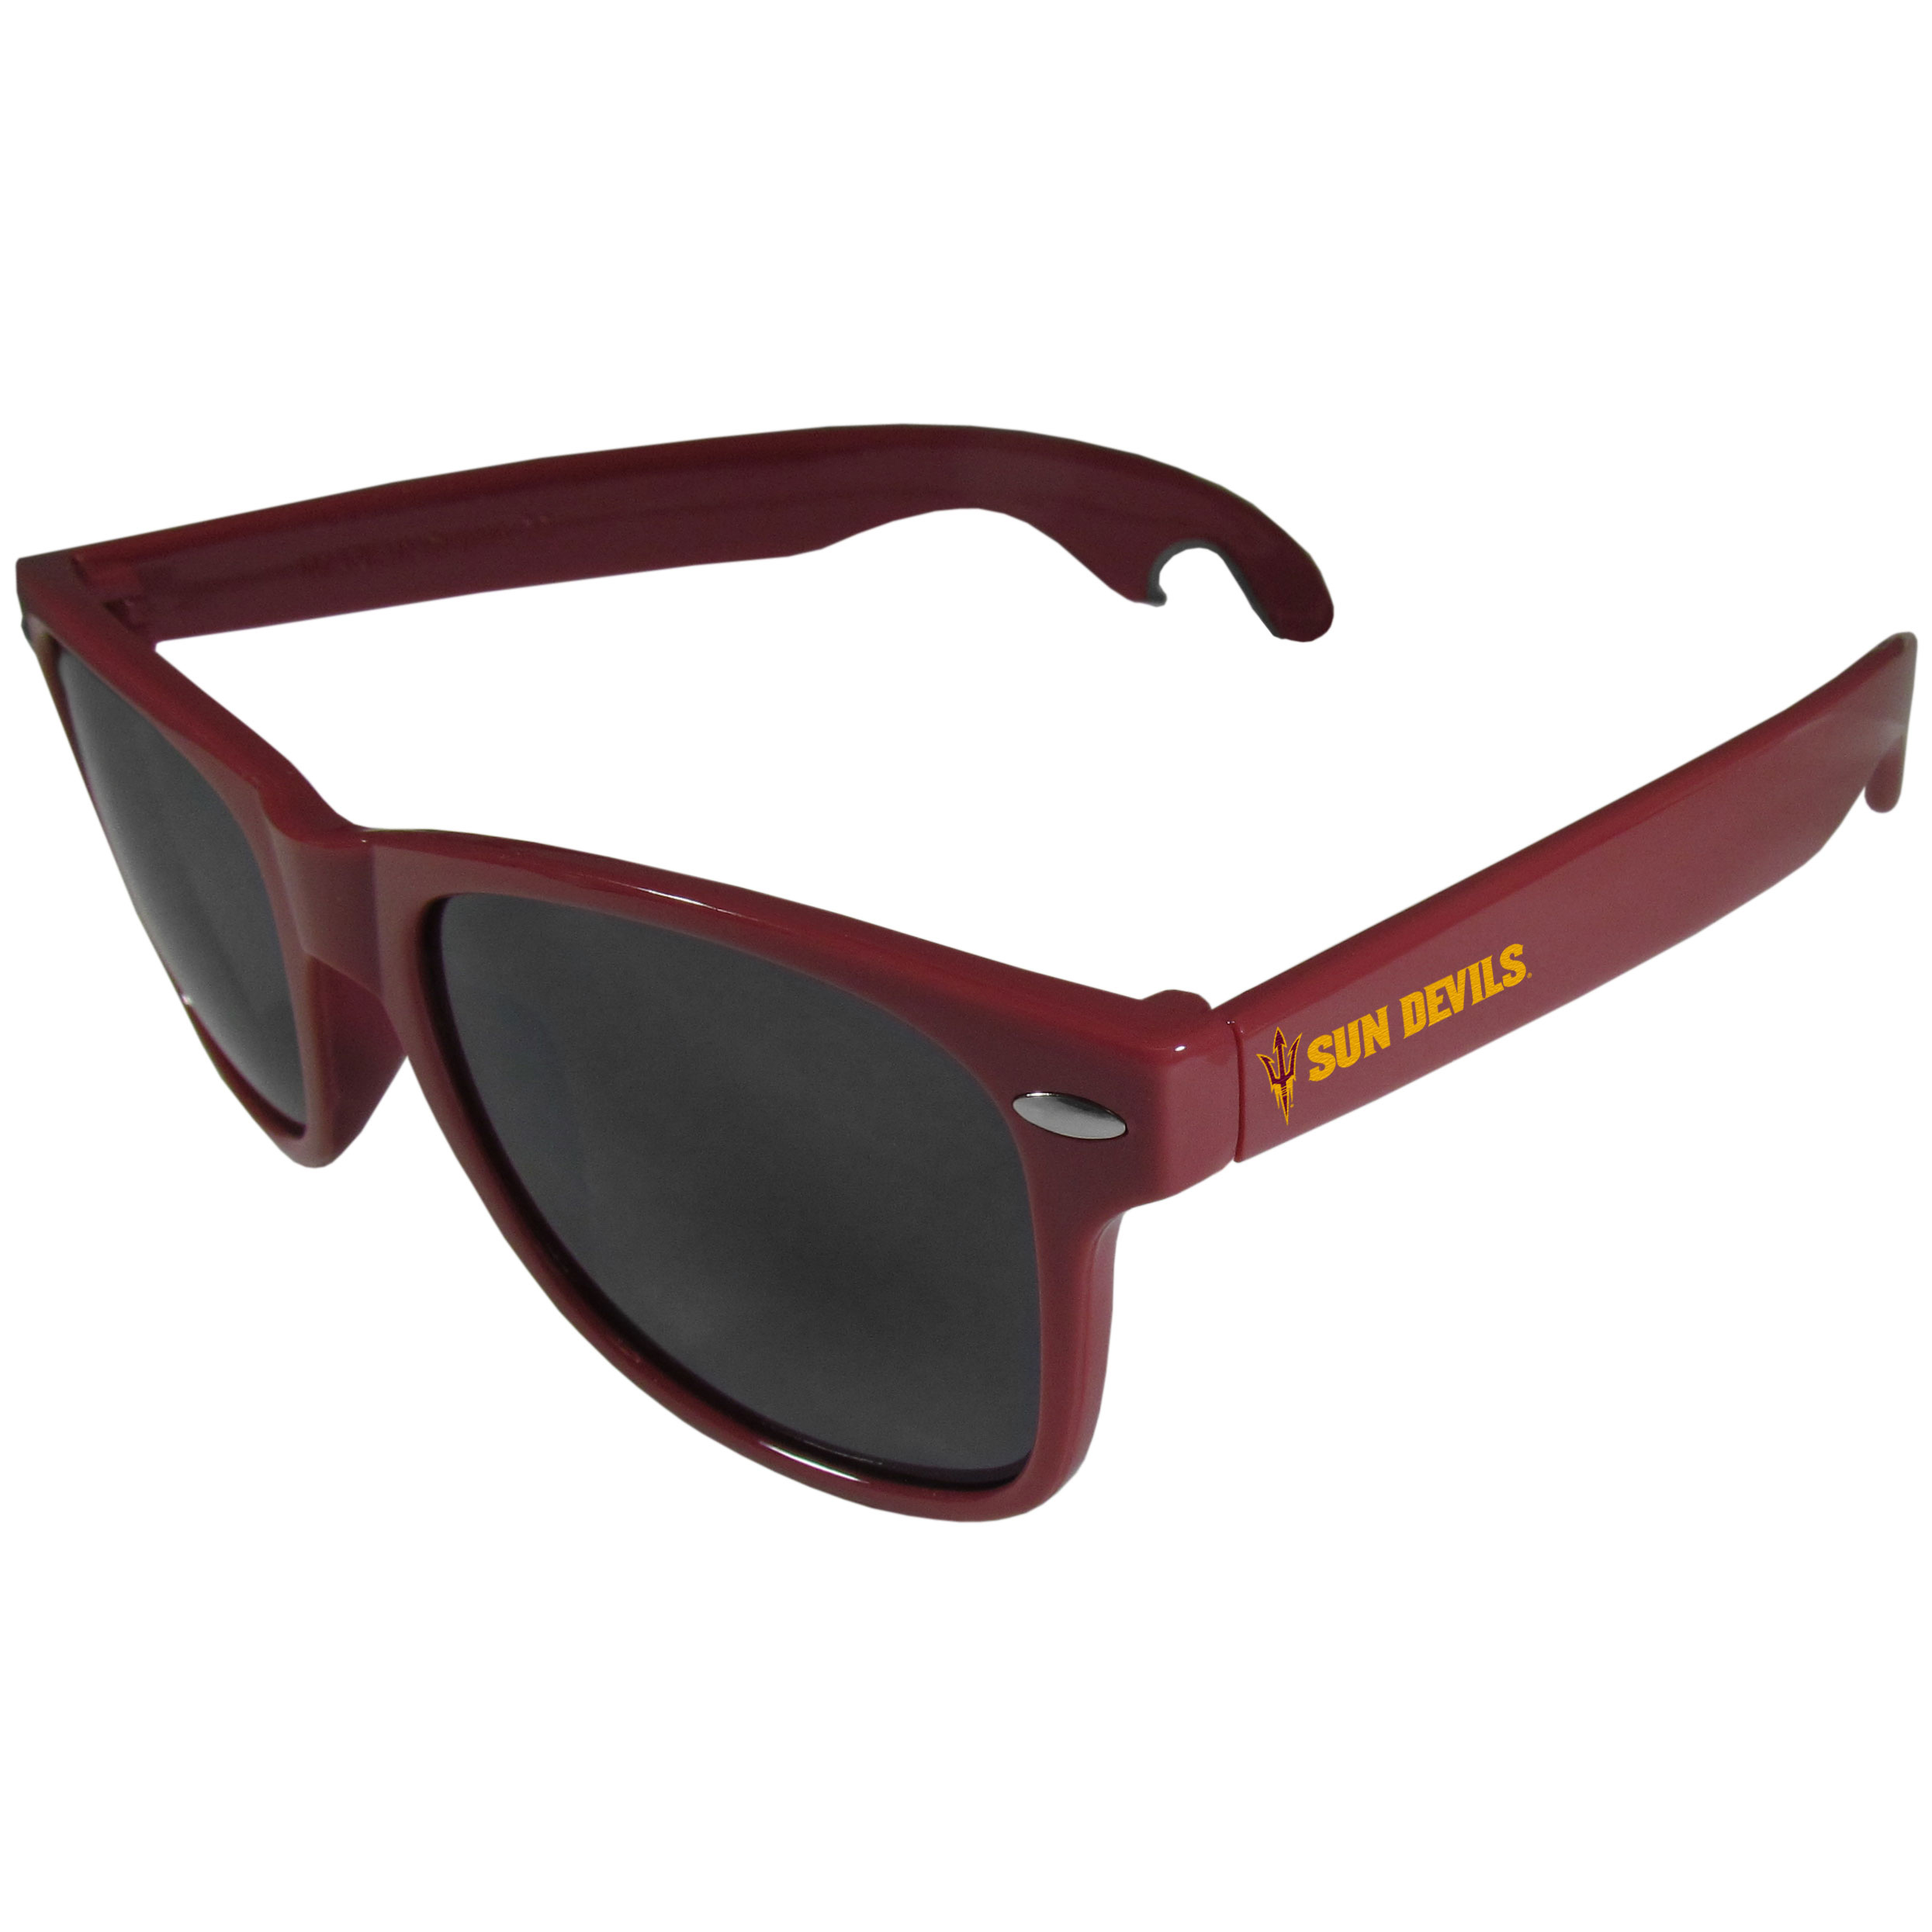 Arizona St. Sun Devils Beachfarer Bottle Opener Sunglasses, Maroon - Seriously, these sunglasses open bottles! Keep the party going with these amazing Arizona St. Sun Devils bottle opener sunglasses. The stylish retro frames feature team designs on the arms and functional bottle openers on the end of the arms. Whether you are at the beach or having a backyard BBQ on game day, these shades will keep your eyes protected with 100% UVA/UVB protection and keep you hydrated with the handy bottle opener arms.